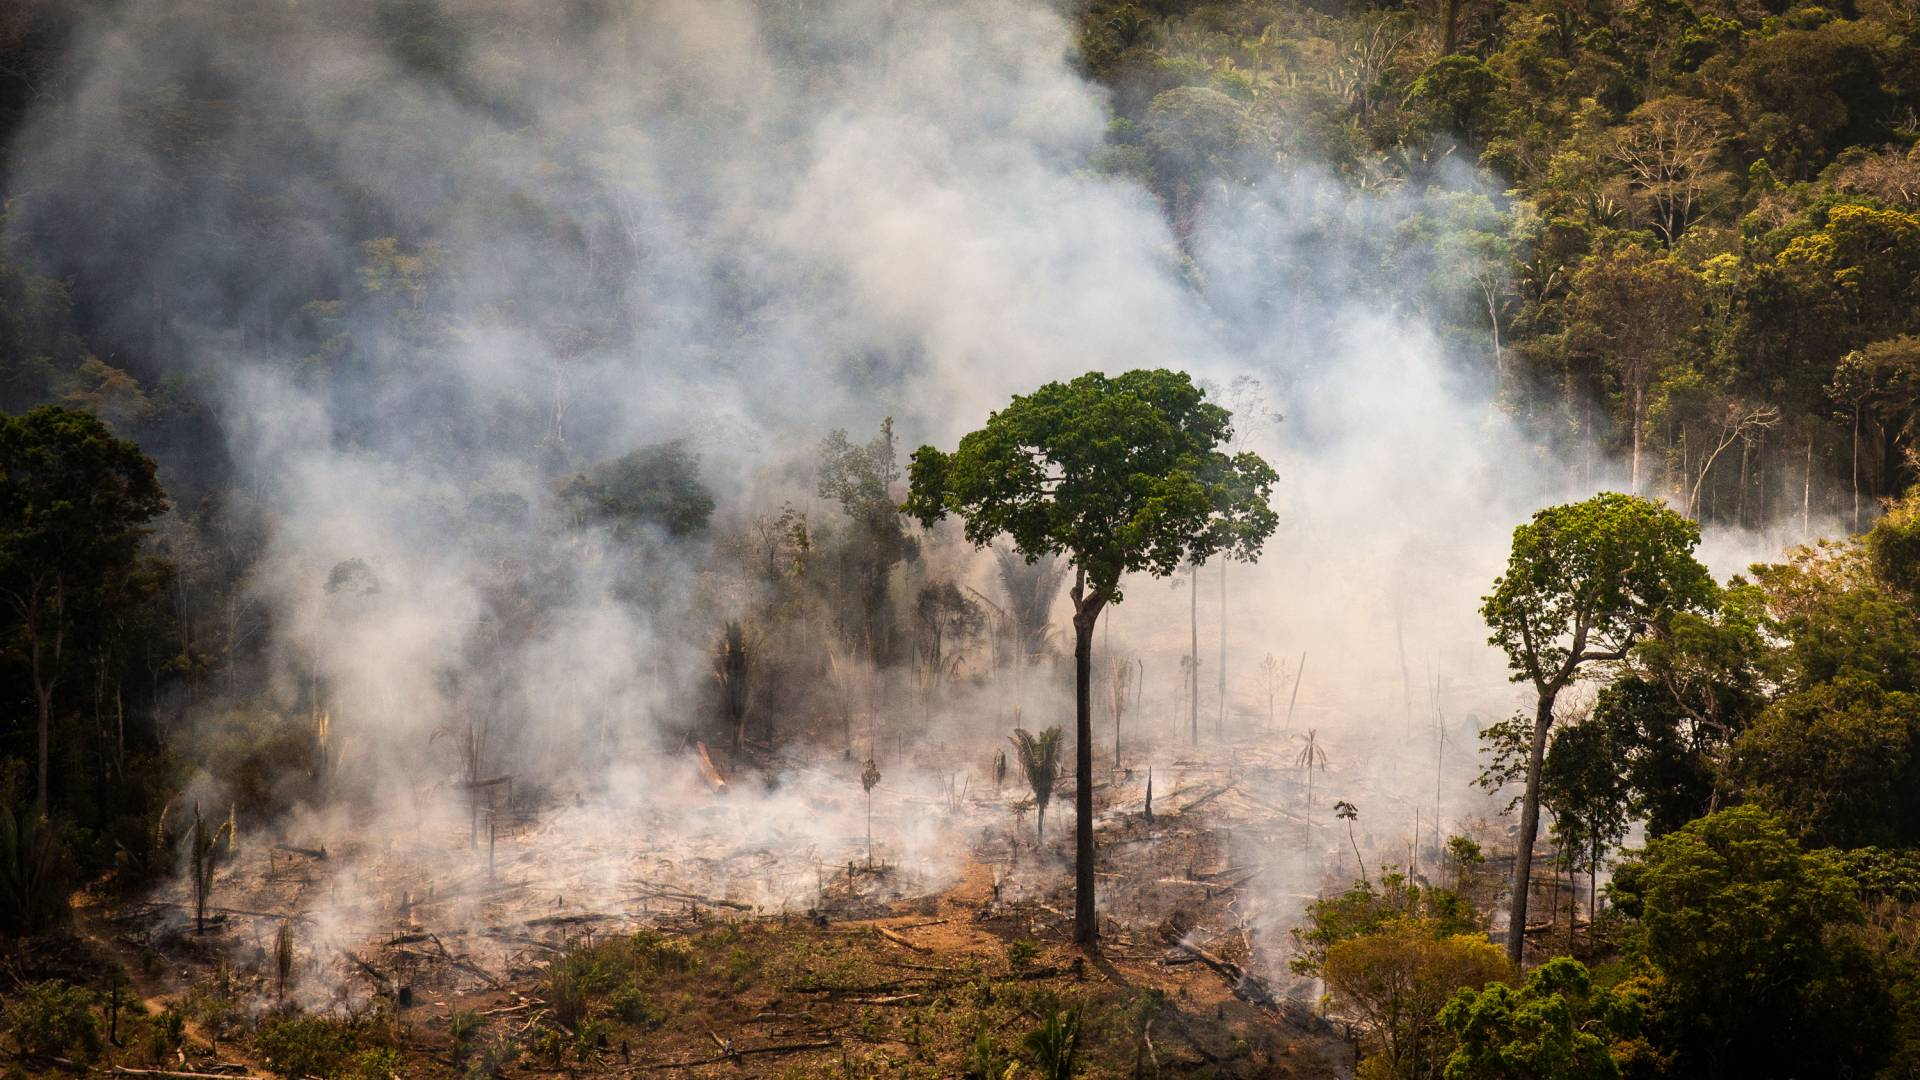 A tree in the amazon forest in front of fire and smoke